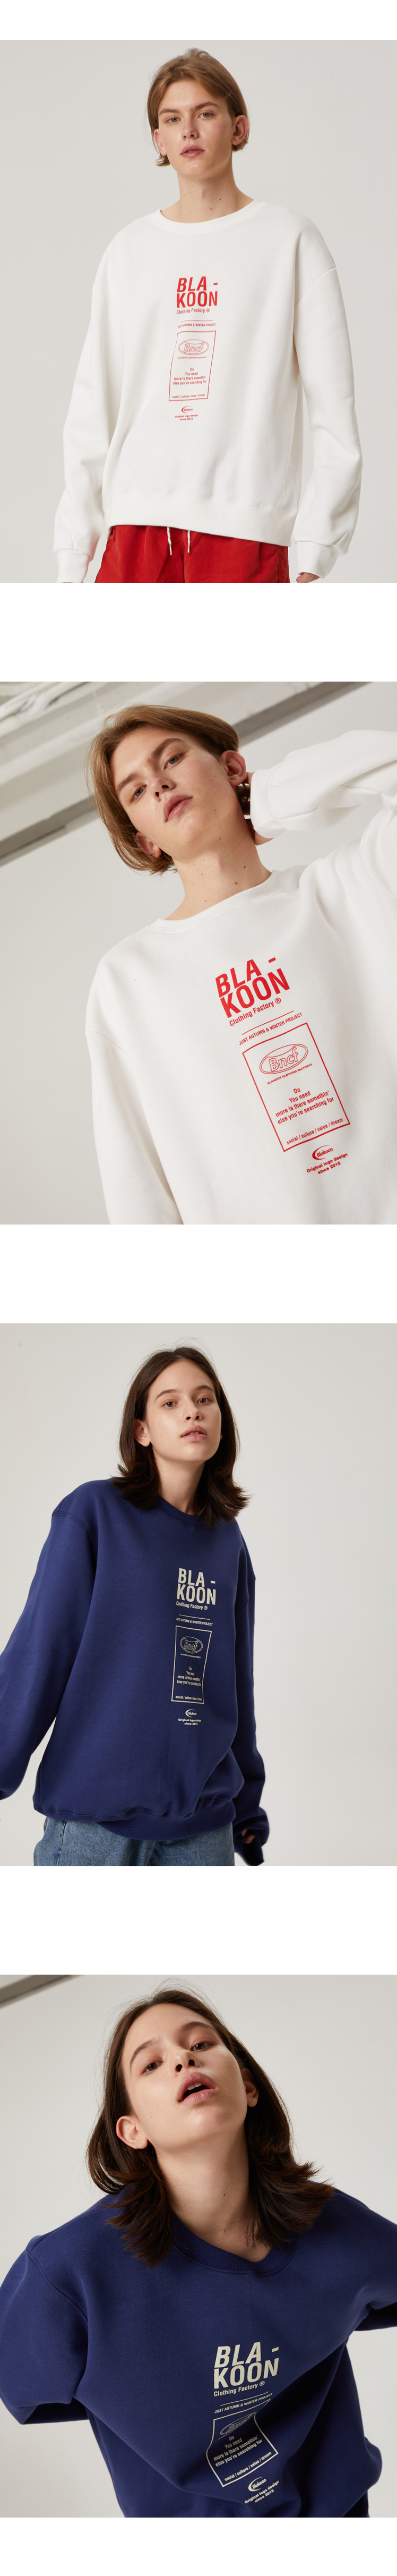 LONG-BOX-LOGO-SWEATSHRITS_03.jpg